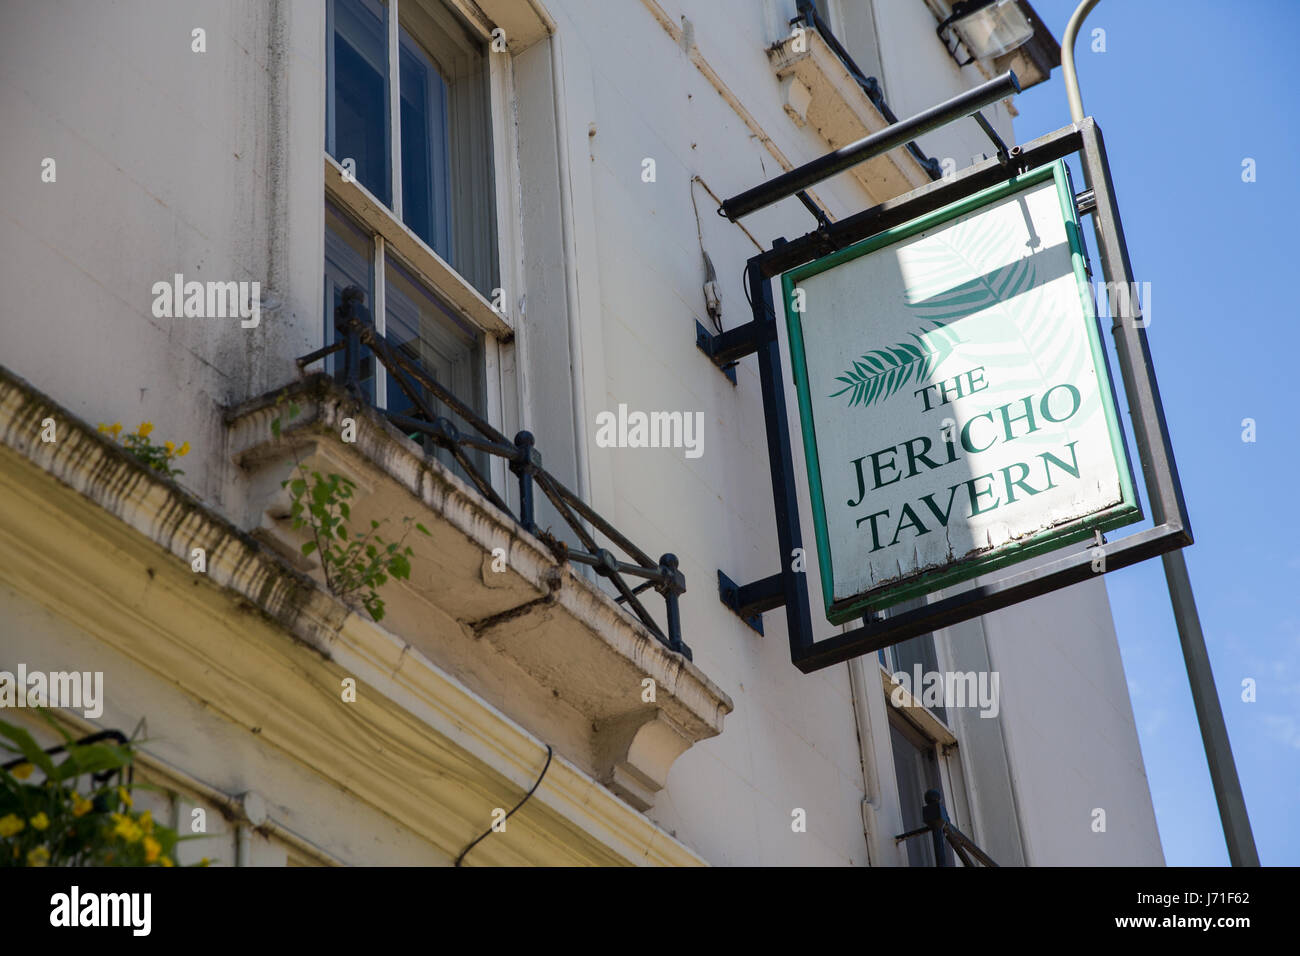 Oxford, UK. 22nd May, 2017. The Jericho Tavern, where Radiohead played a gig under the name On A Friday in 1991 Stock Photo